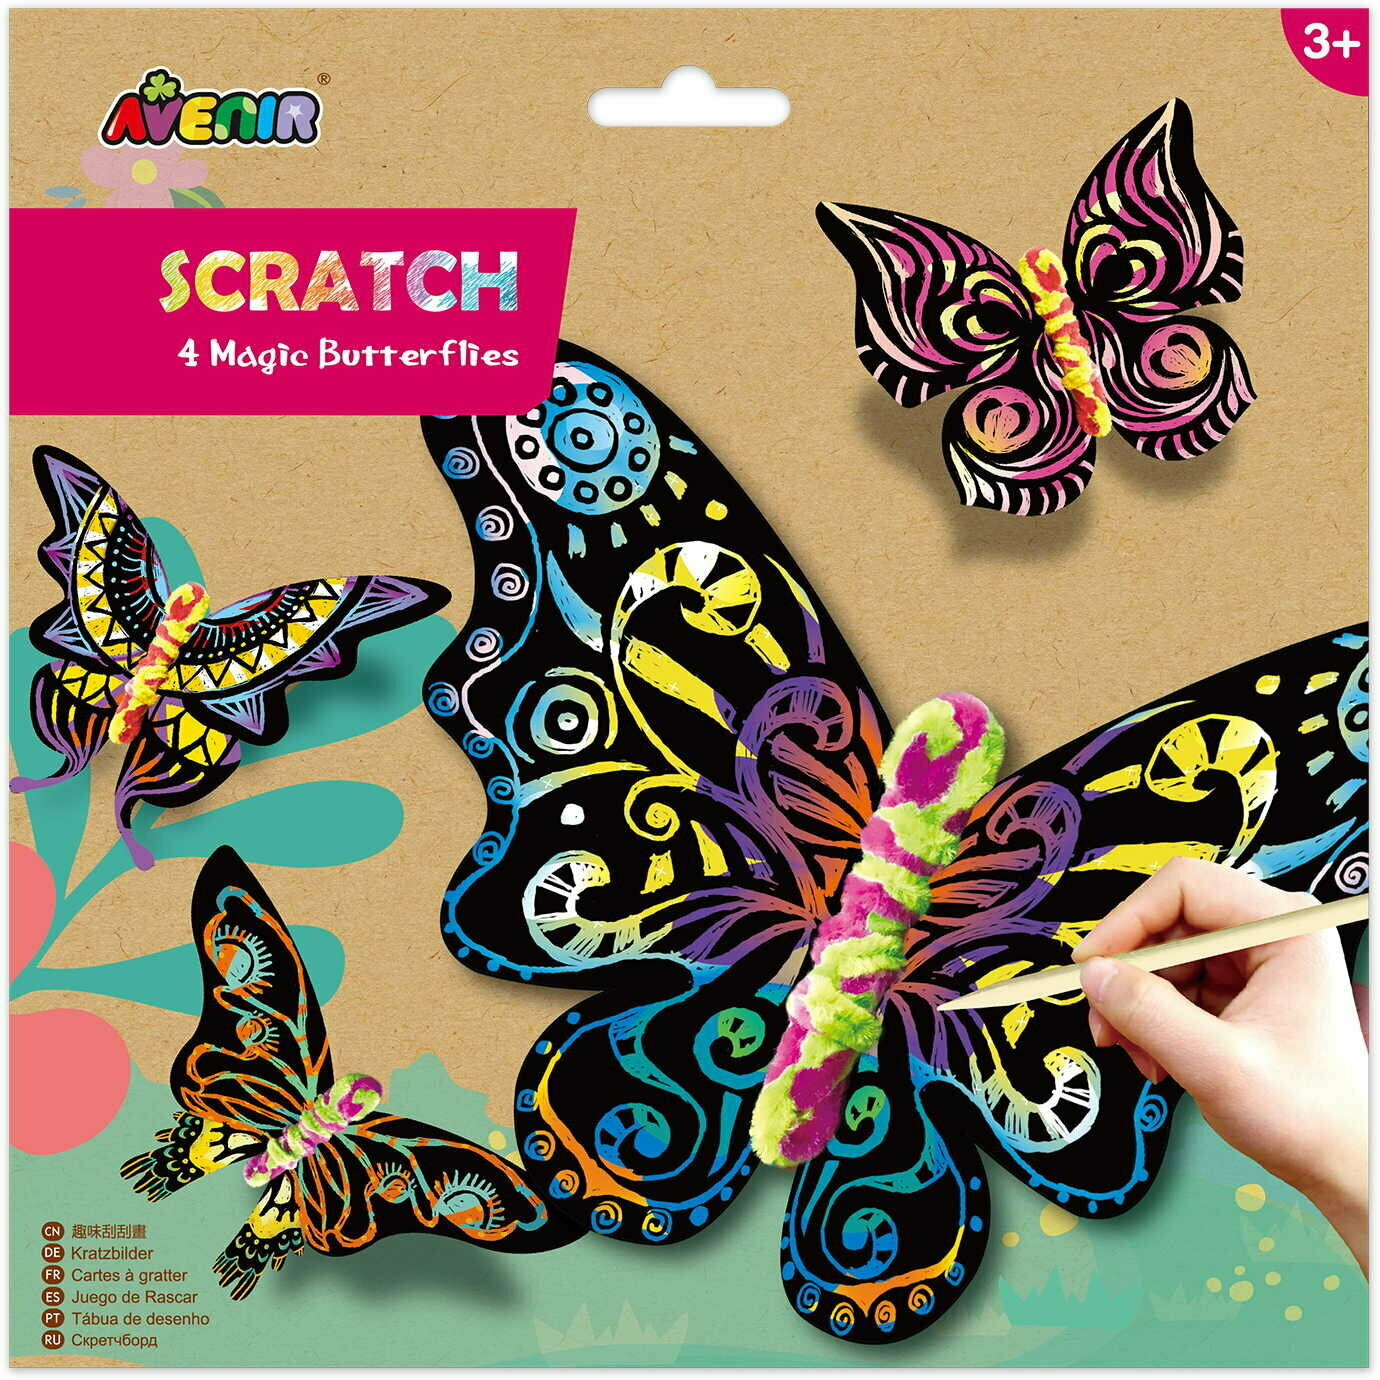 Scratch - 4 Magic Butterflies